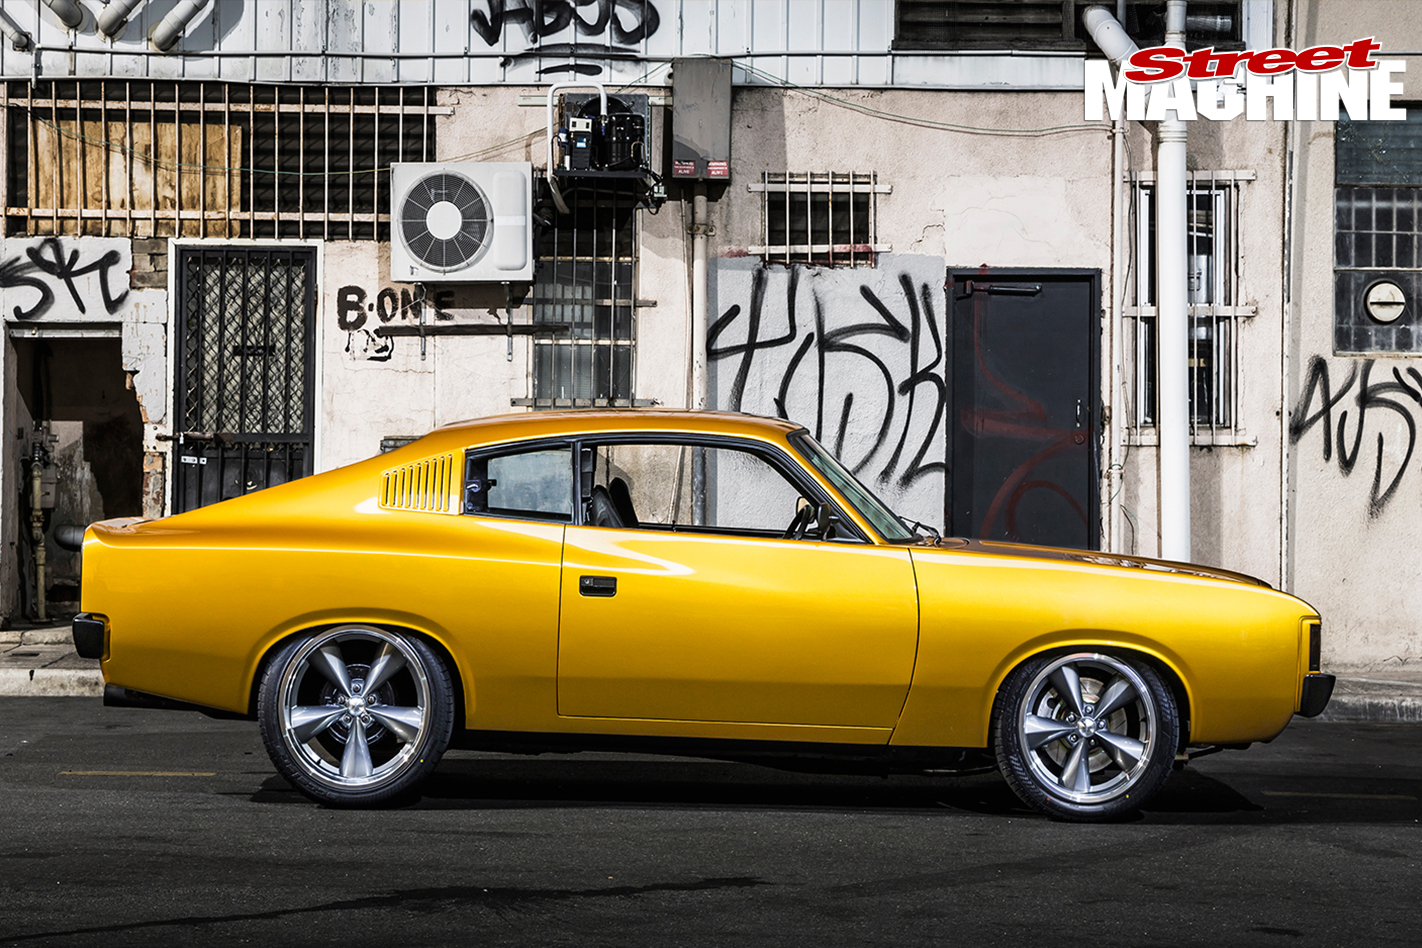 Chrysler -VJ-Charger -side -view